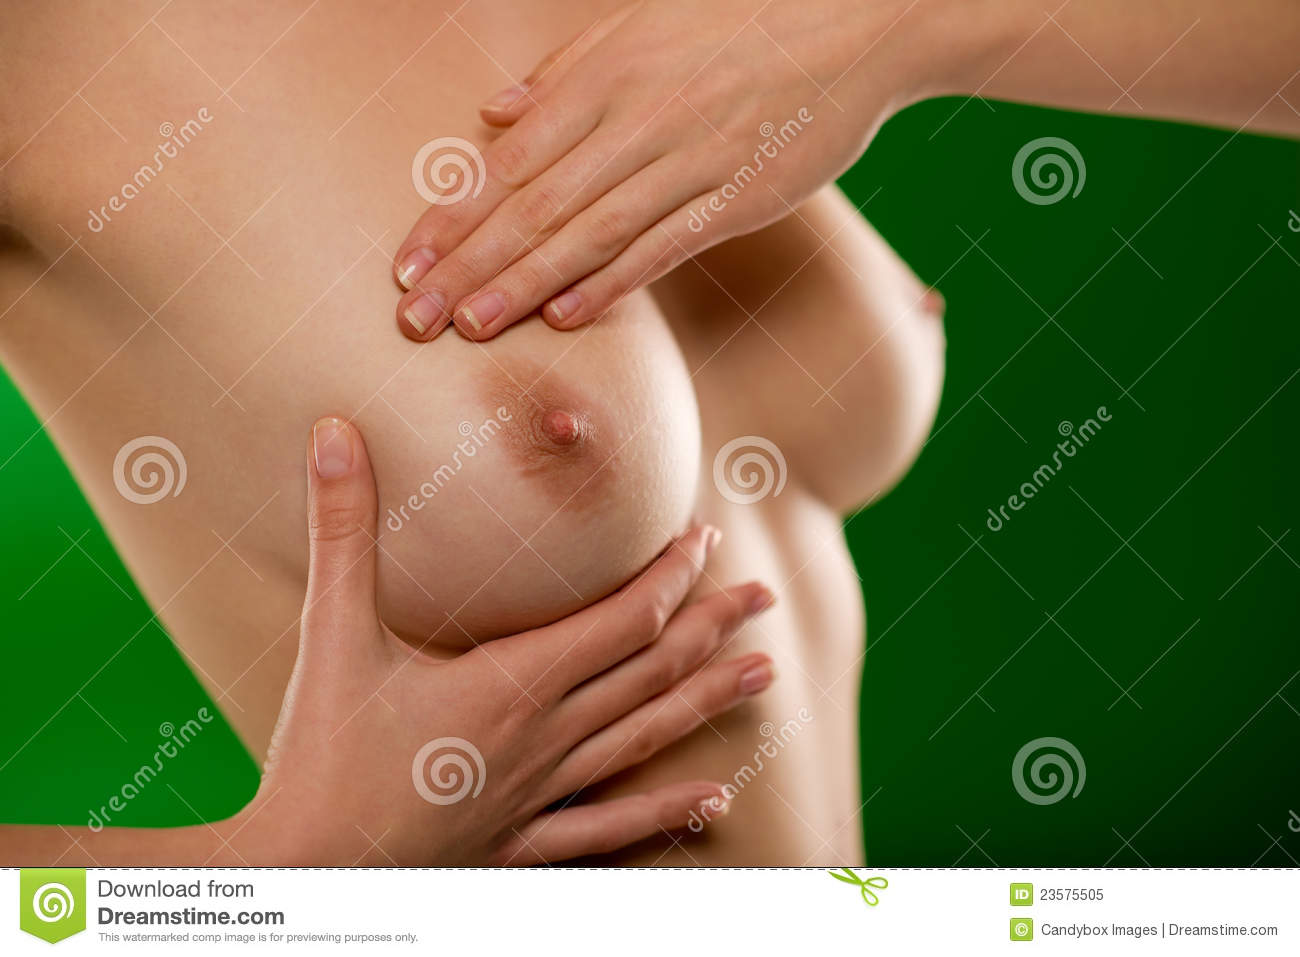 Breast cancer self examination instructional video 2 Part 2 9